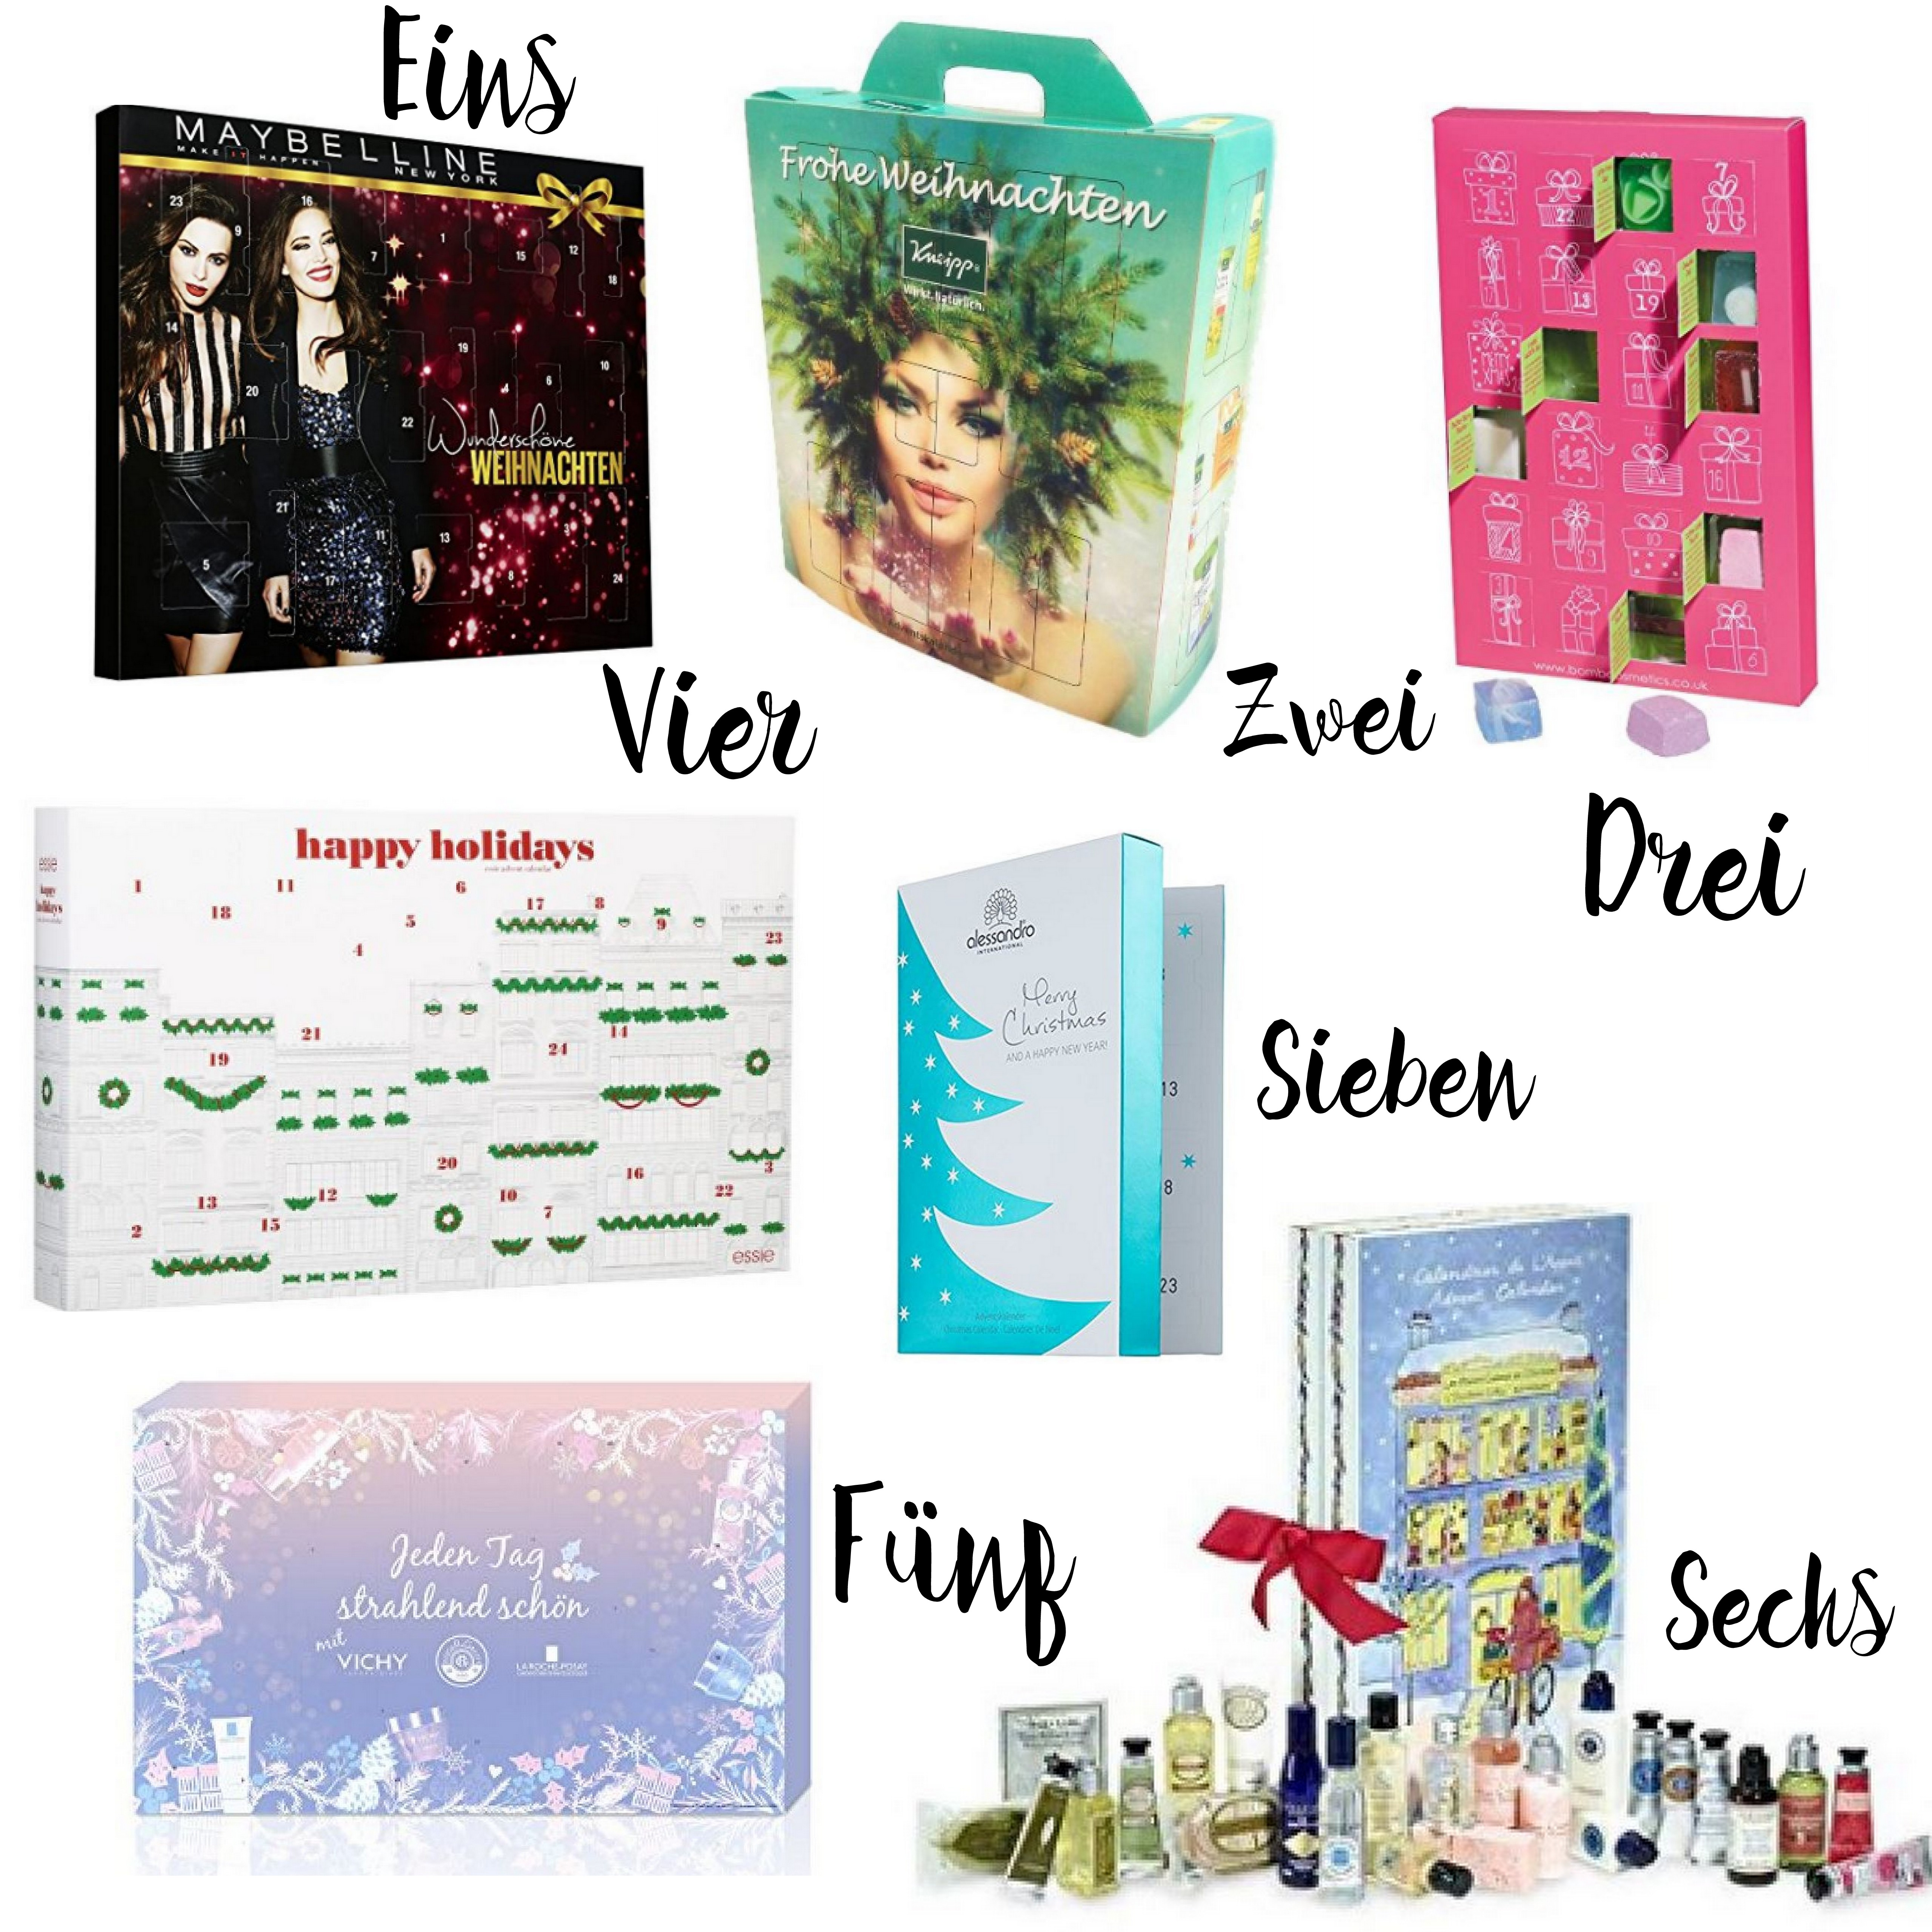 Die besten Kosmetik Adventskalender 2016 mit Amazon Beauty Adventskalender, Essie Adventskalender, L'Occitane Adventskalender, Vichy Adventskalender und mehr auf I need sunshine Beautyblog